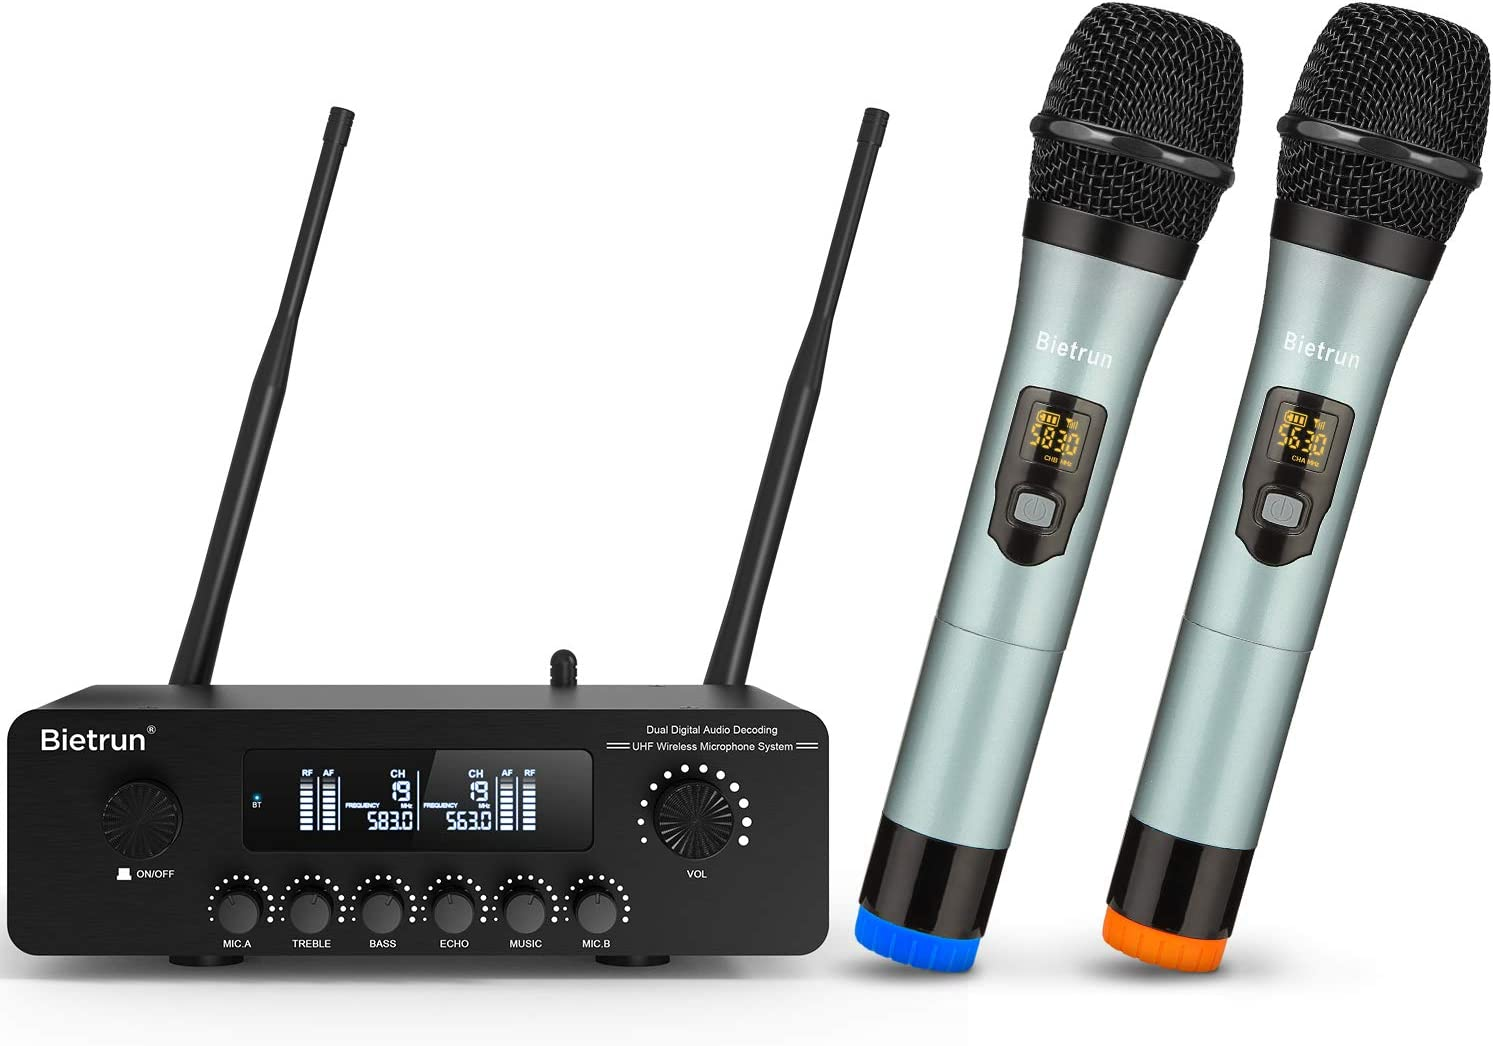 Wireless Karaoke Microphone for Smart TV, with Echo/Treble/Bass&Bluetooth, UHF 165 ft Range, LCD Display, Digital Optical&Coaxial Input, Dual Dynamic Metal Mic System, for TV, BT/PA Speaker, AMP, PC